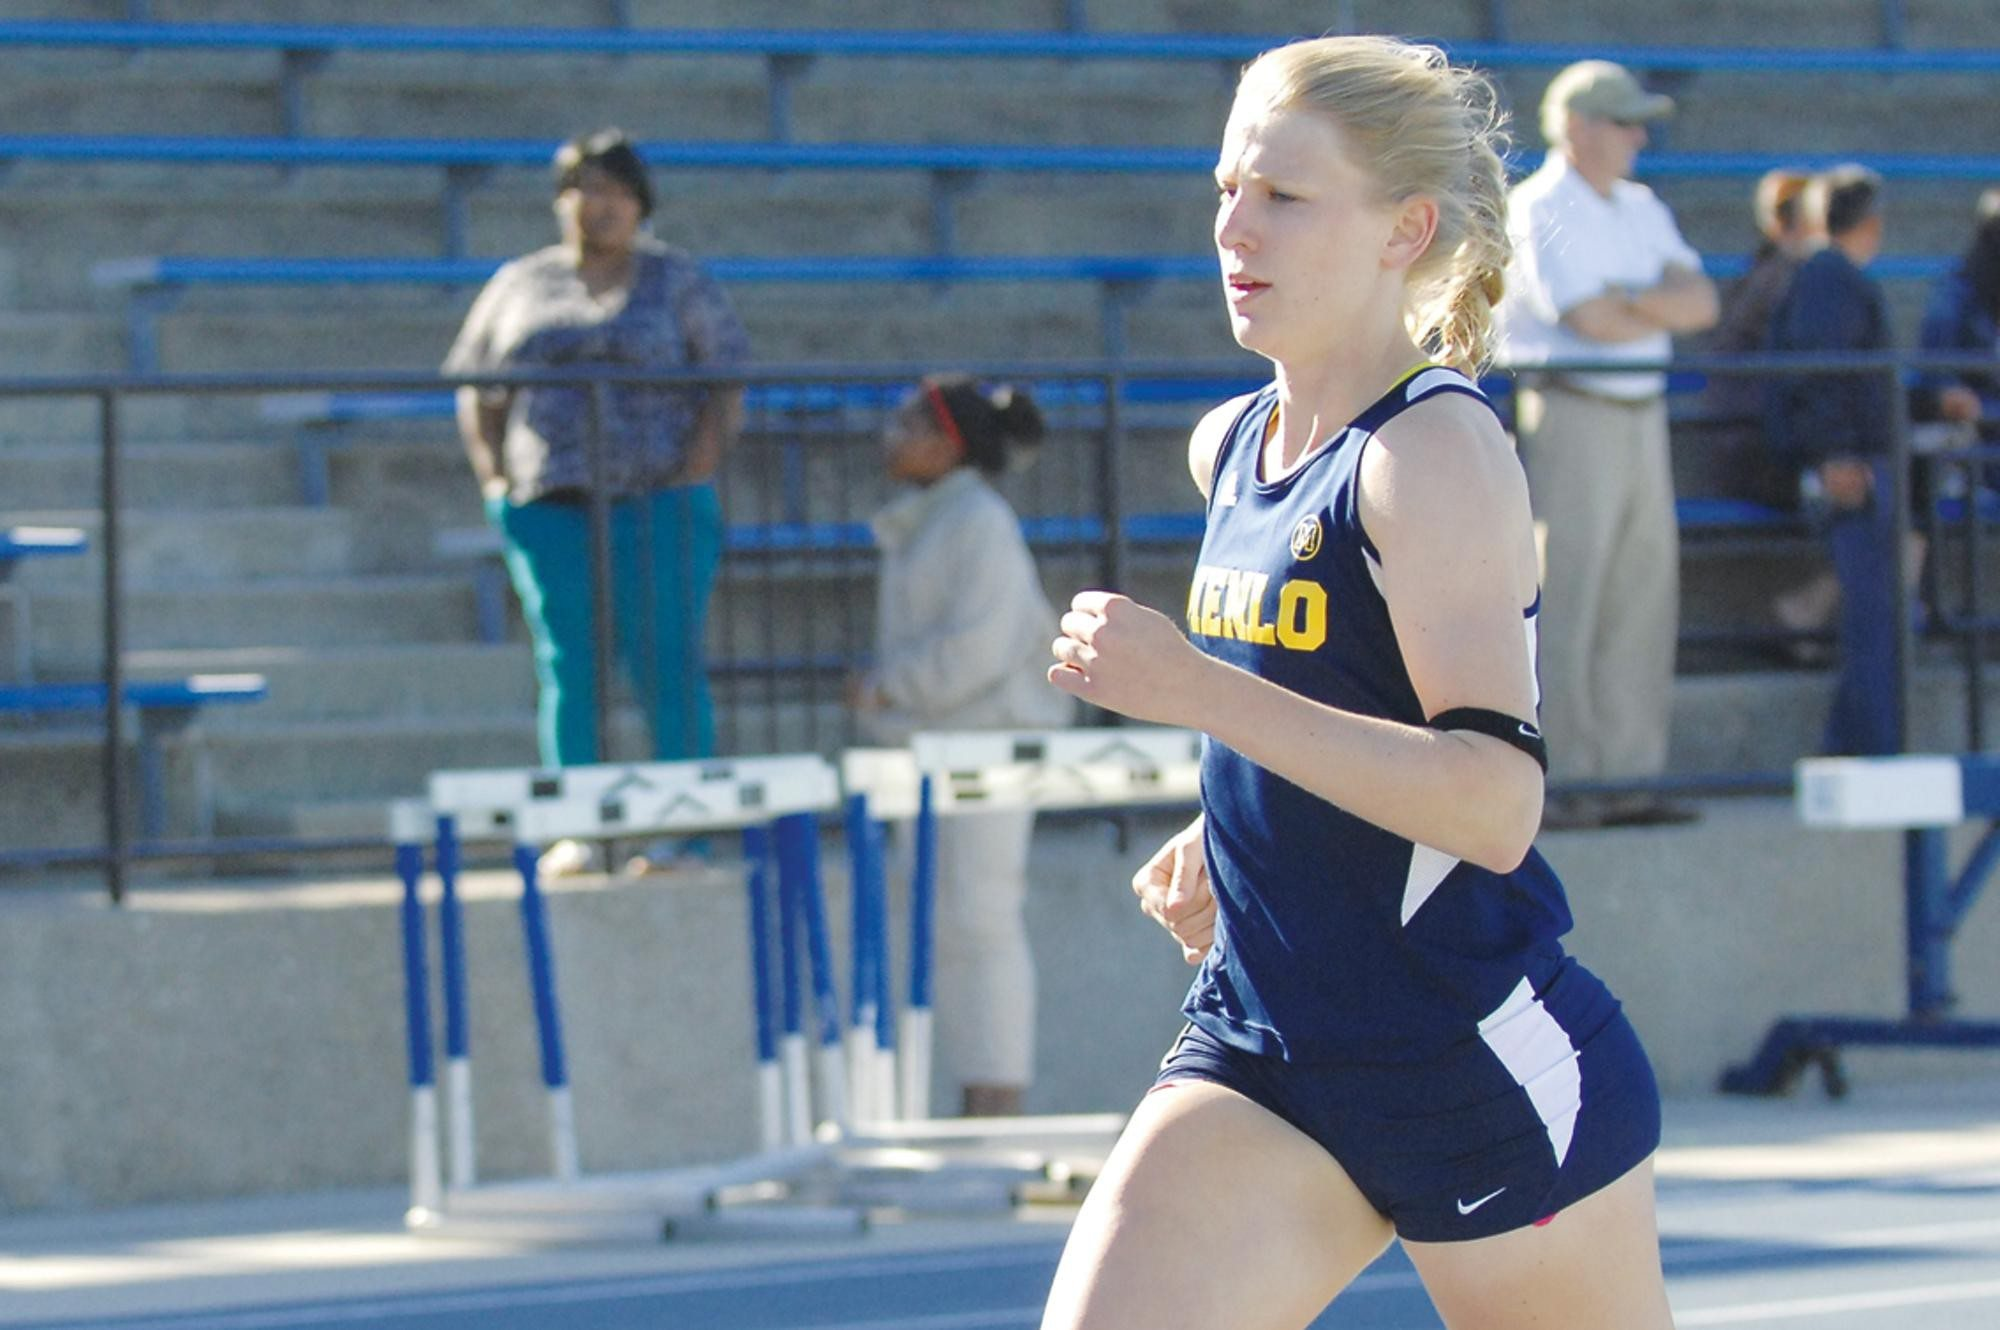 Courtesy Menlo SchoolMenlo's Madeline Price set a personal record of 54.78 seconds in the 400 at the CCS Championships on Friday.